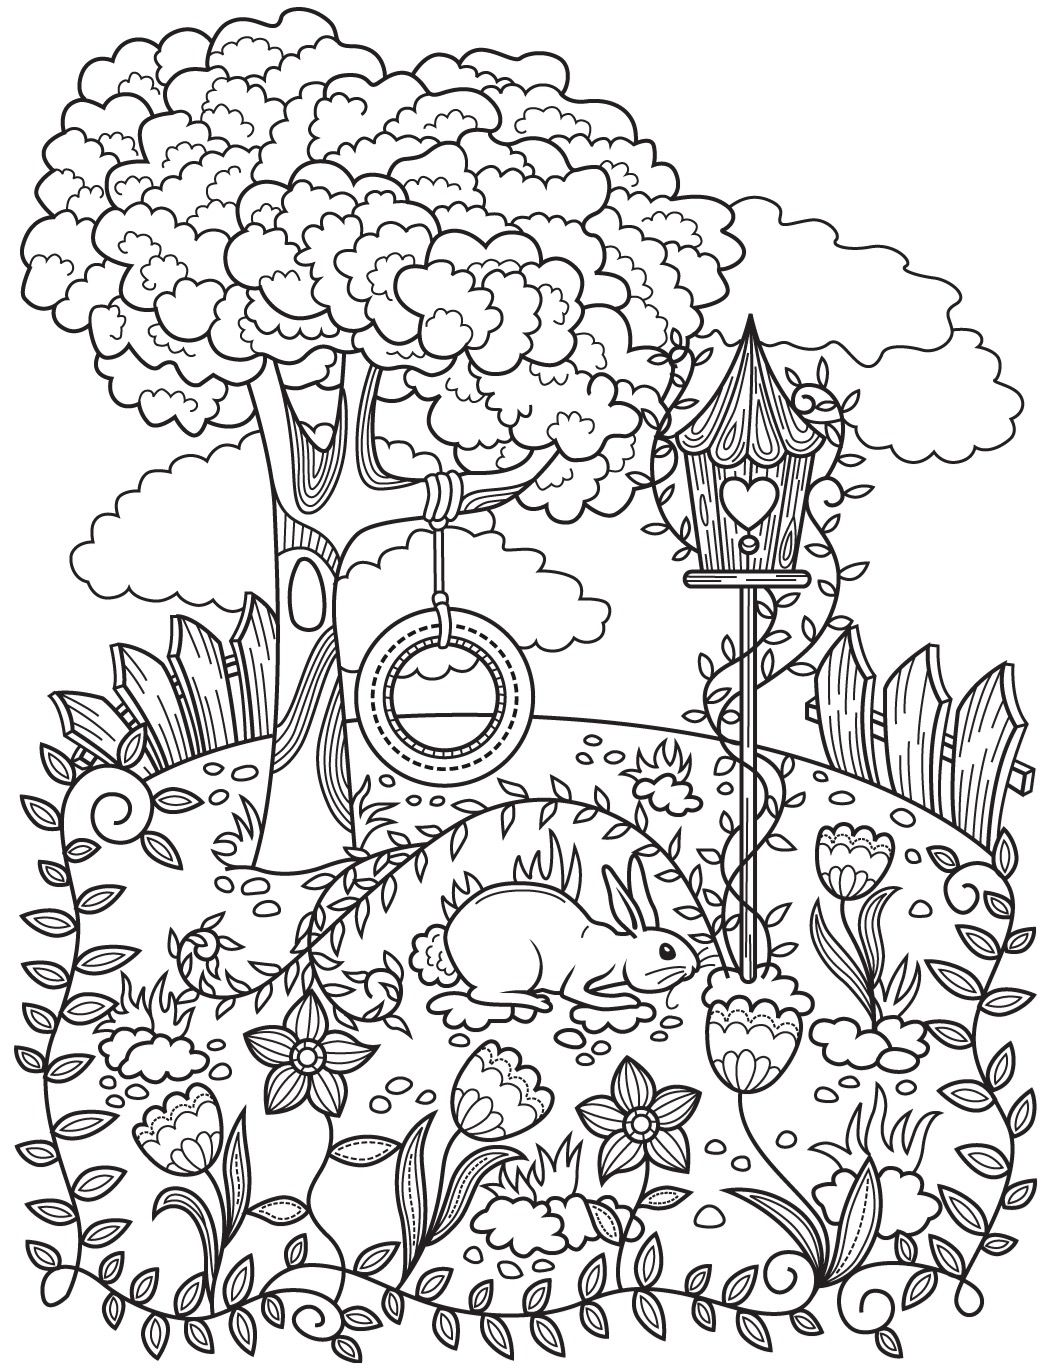 Gardens   Colorish: coloring book app for adults mandala relax by ...